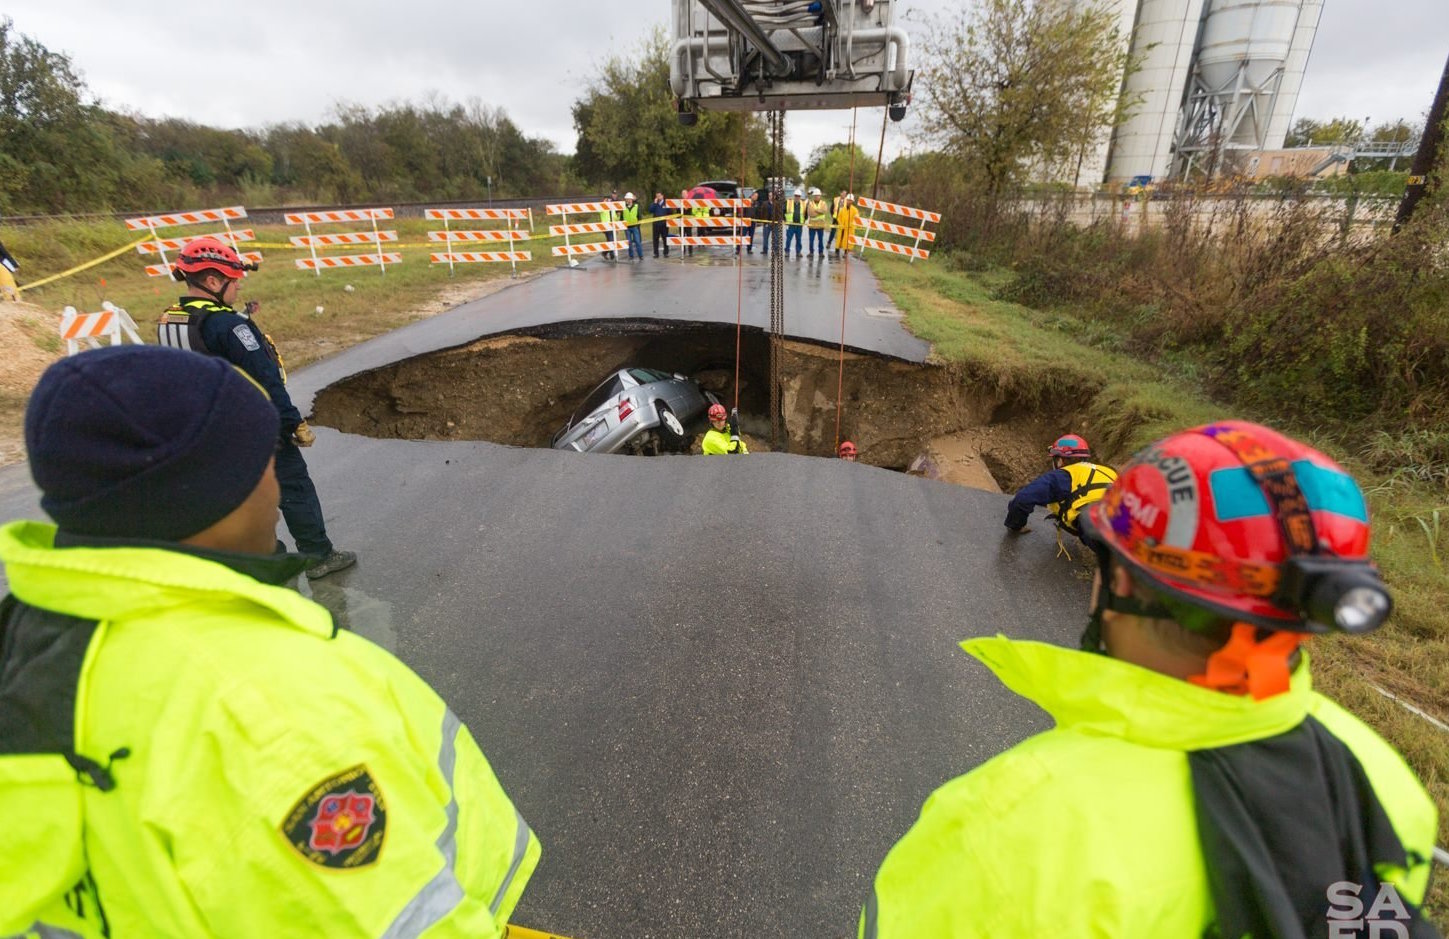 A Policewomen Dies After Crashing in a Sinkhole